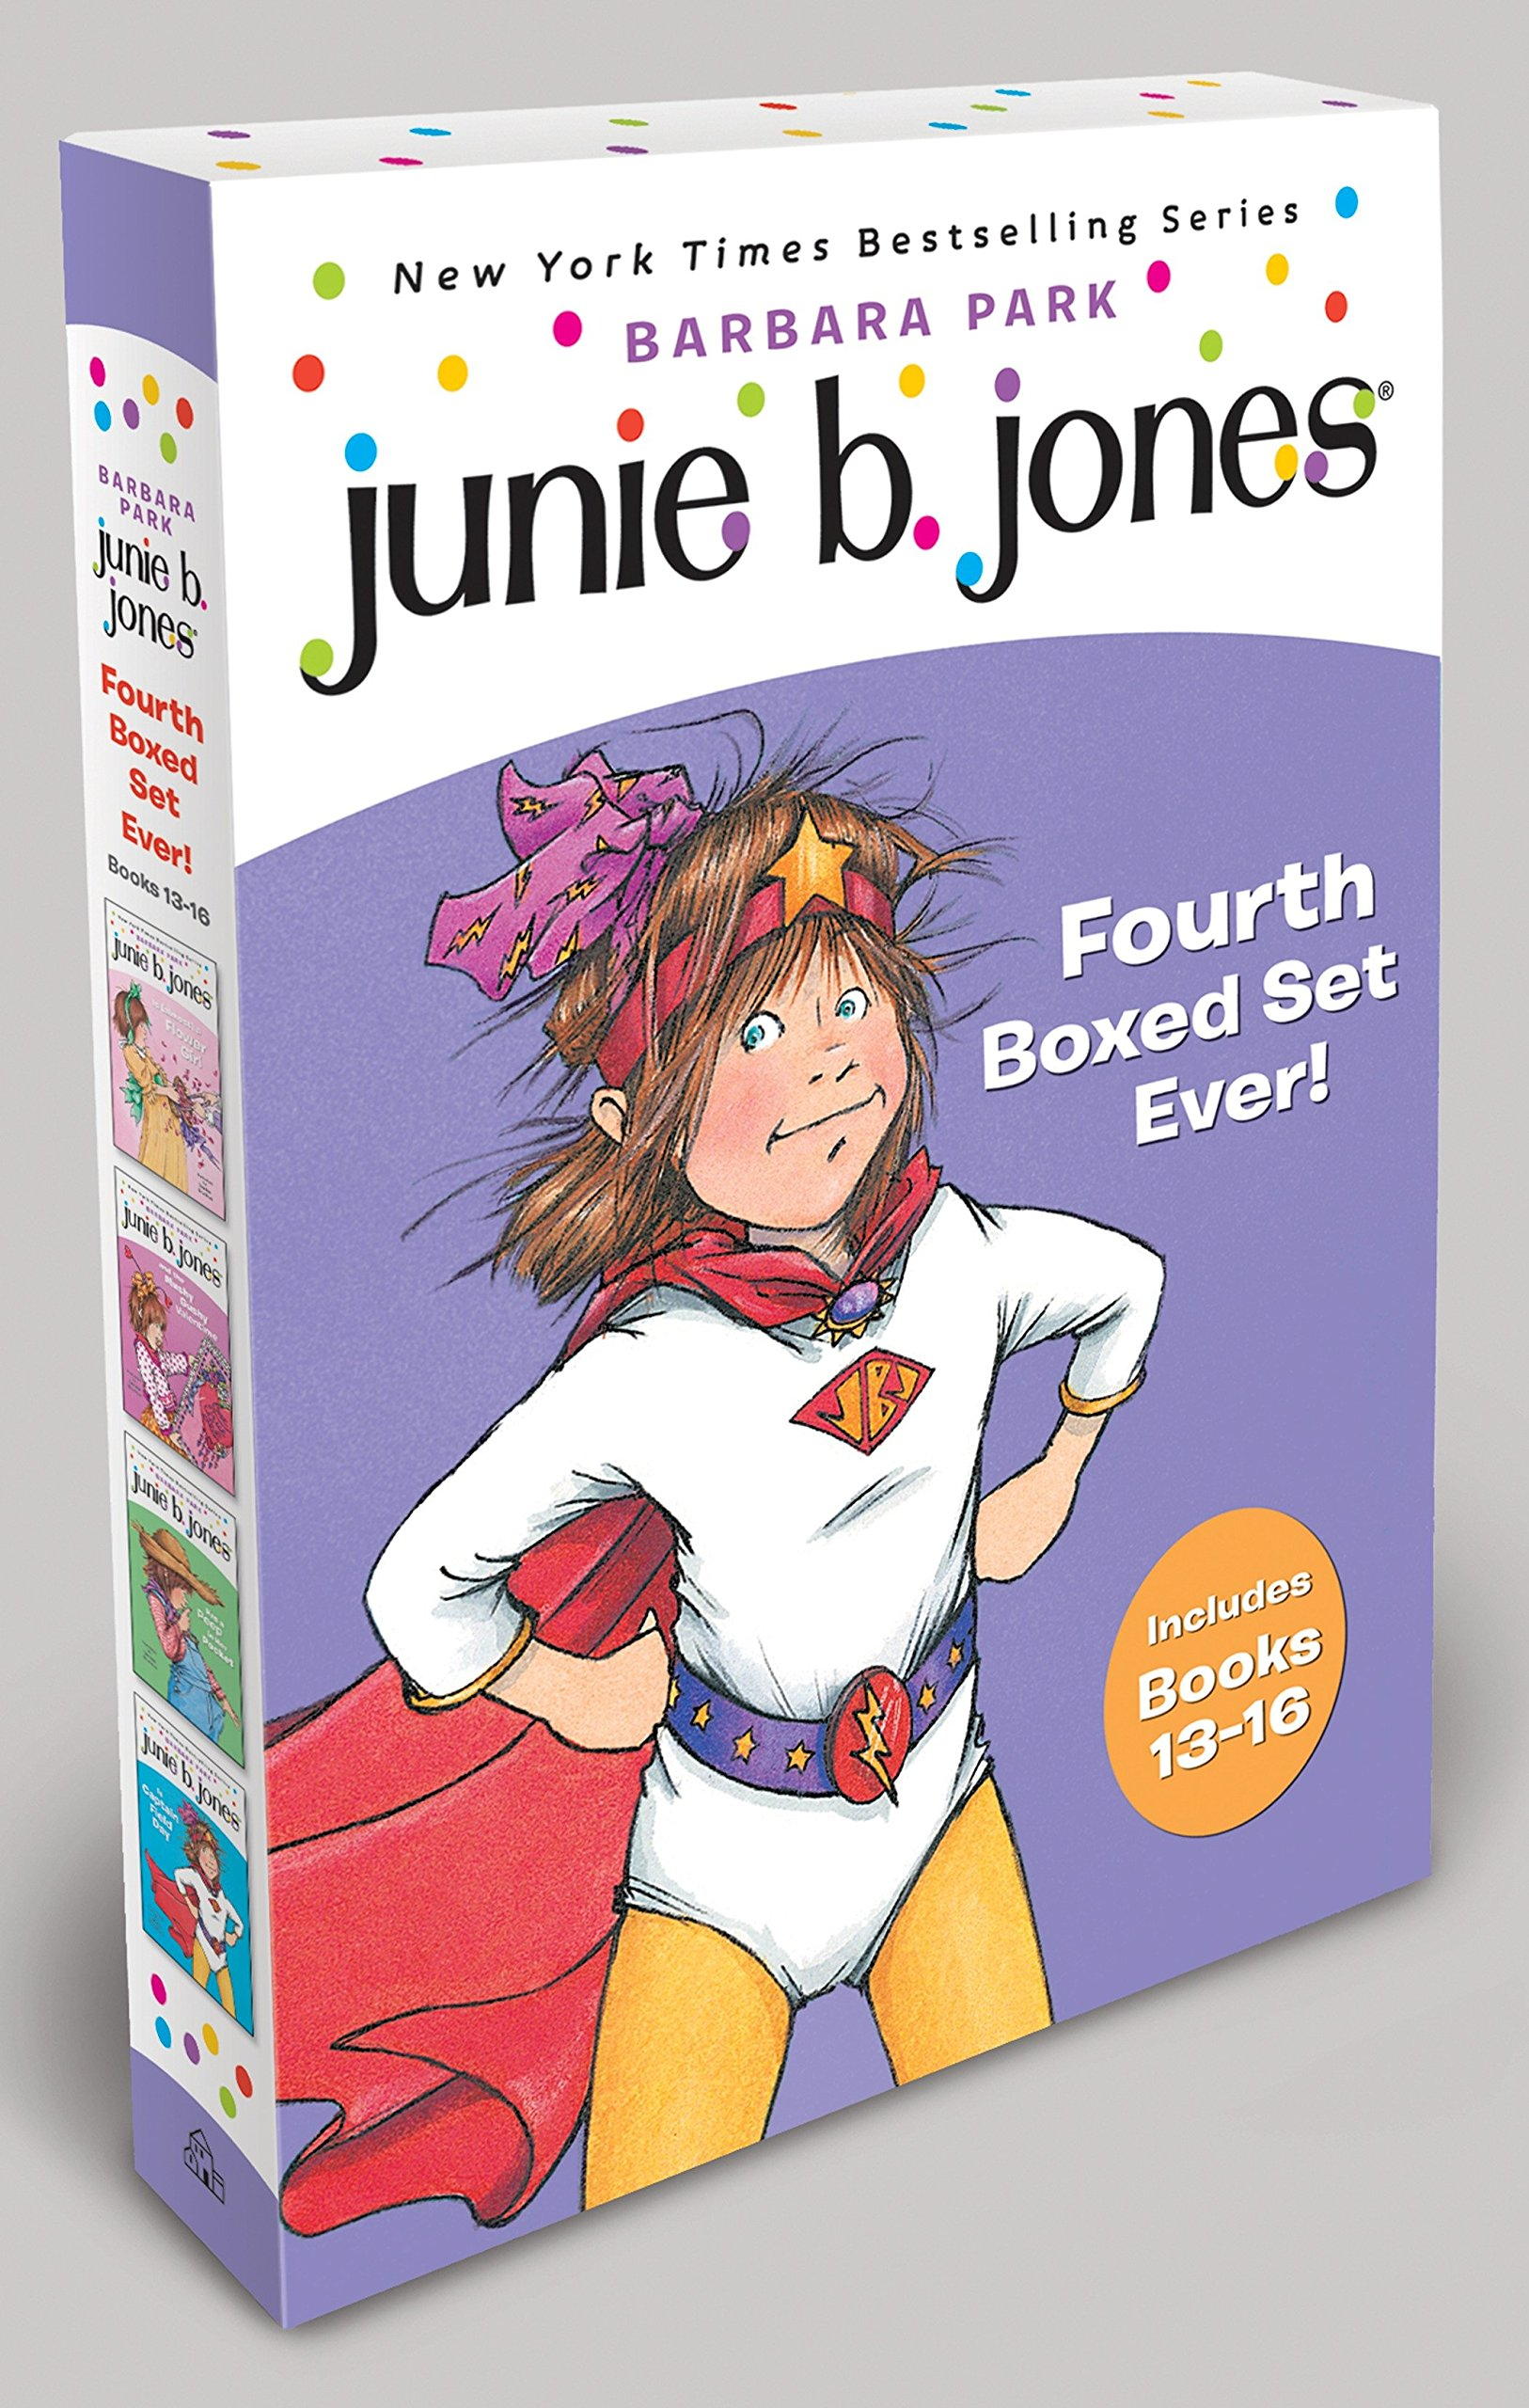 Junie Joness Fourth Boxed Books product image